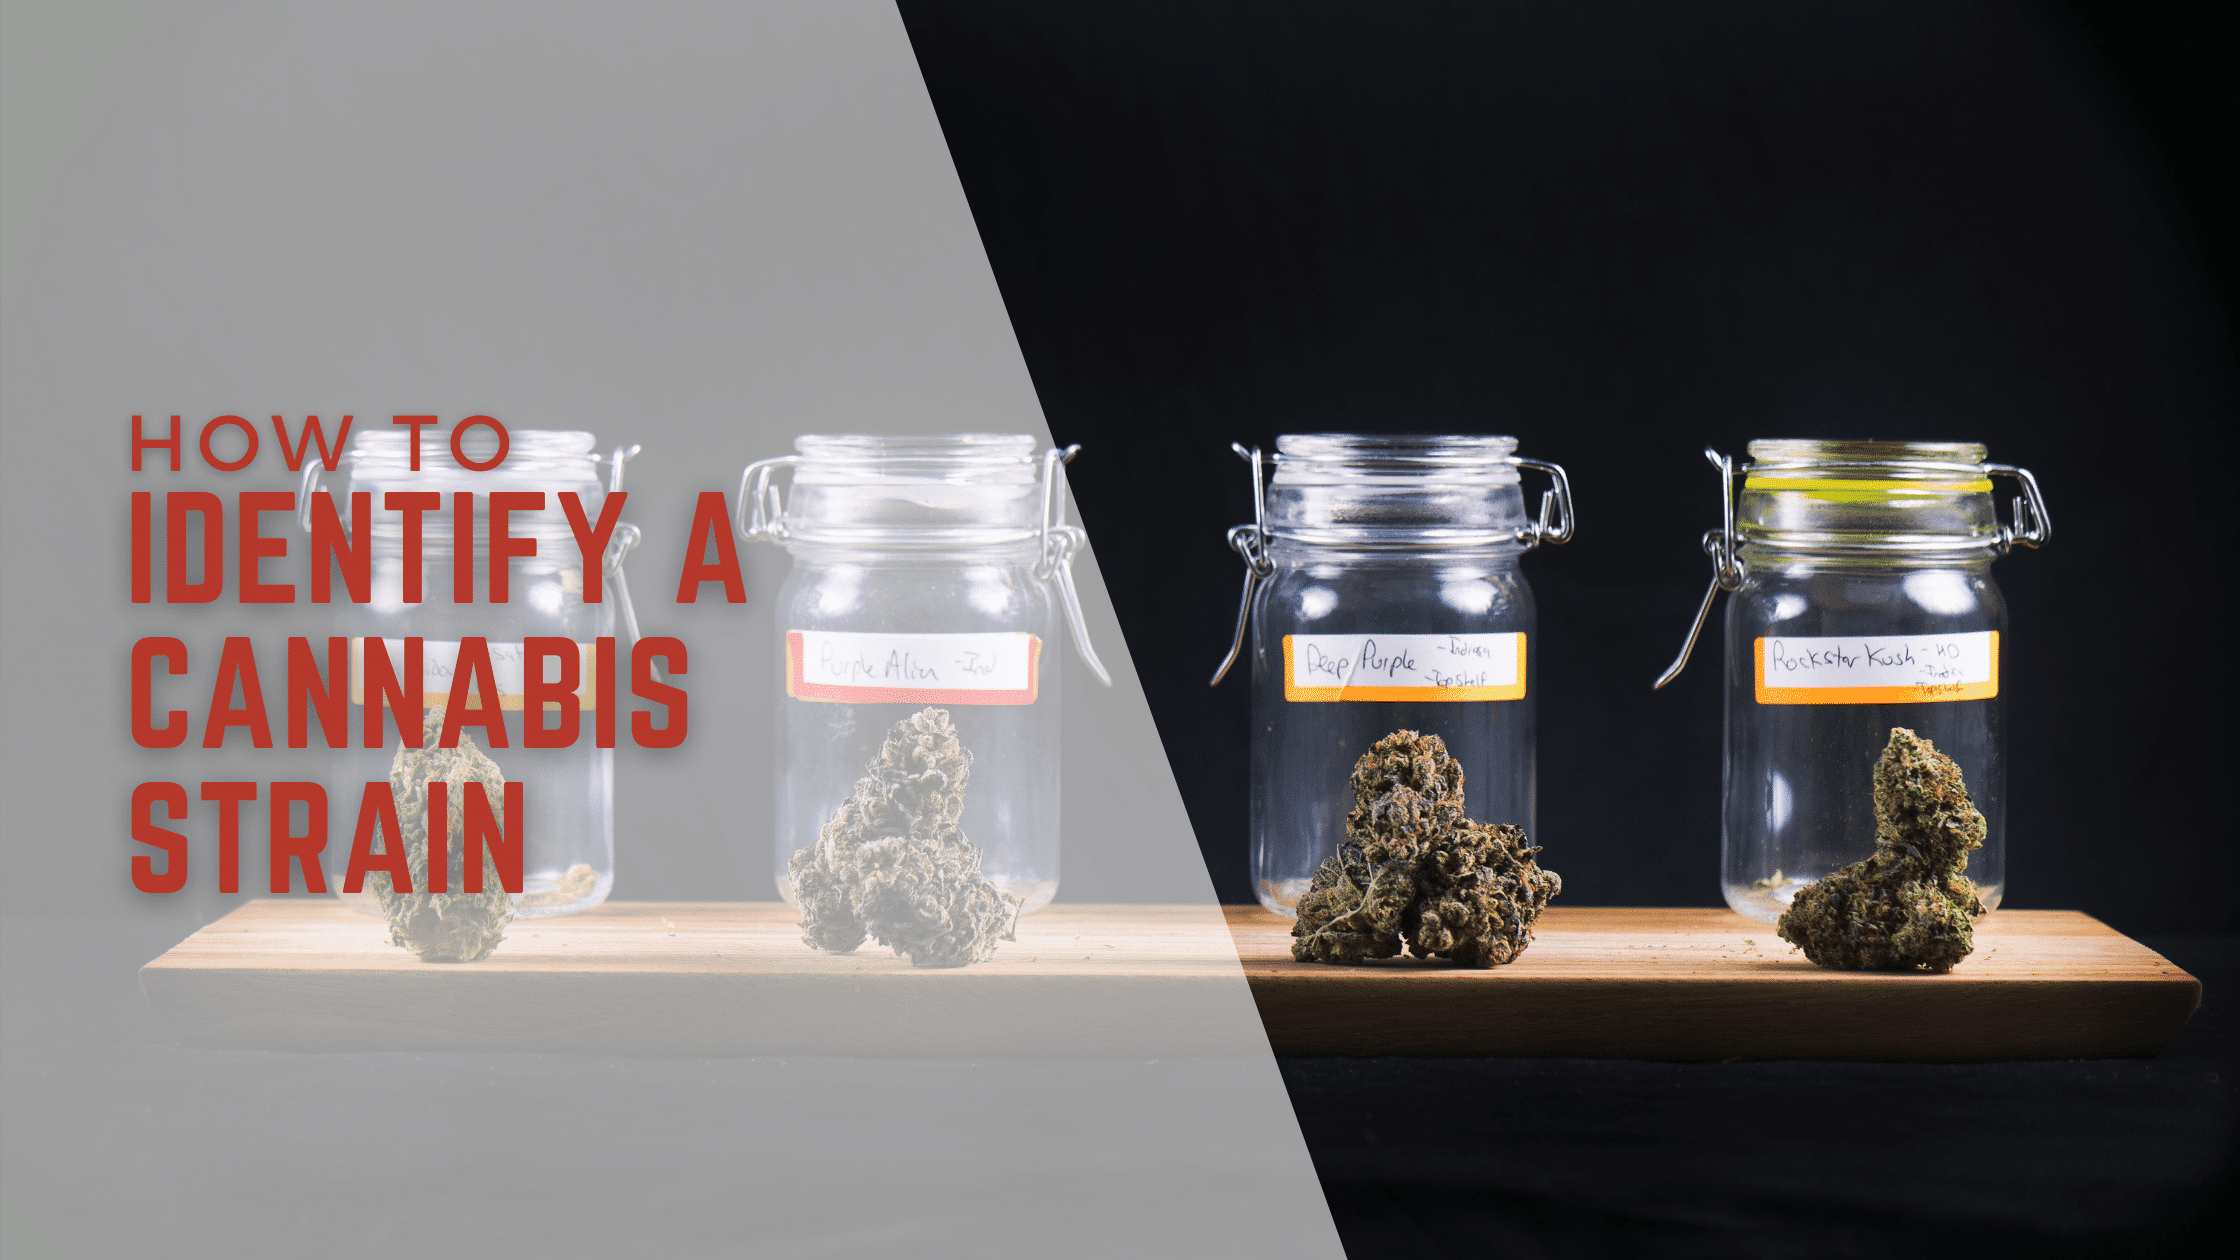 How Does One Identify a Cannabis Strain?